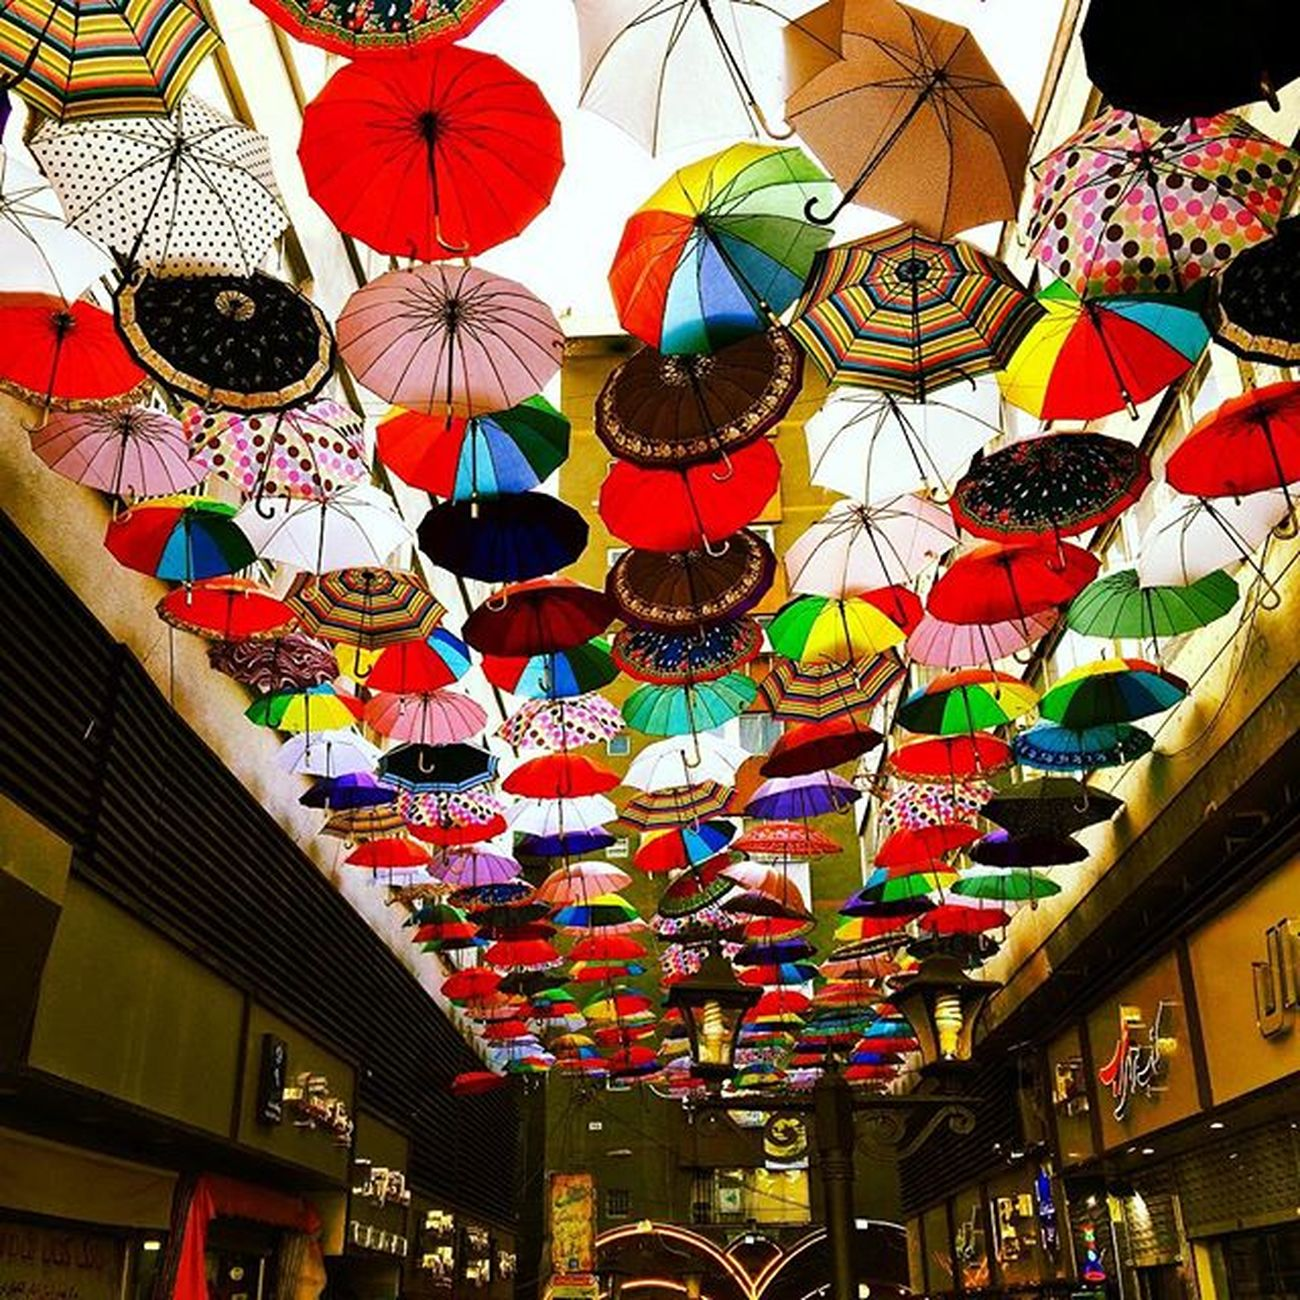 Alley Mehrnaz Tehranfavorite Umbrella Visitcolors Colorforsoul Fullofcolors Countcolors